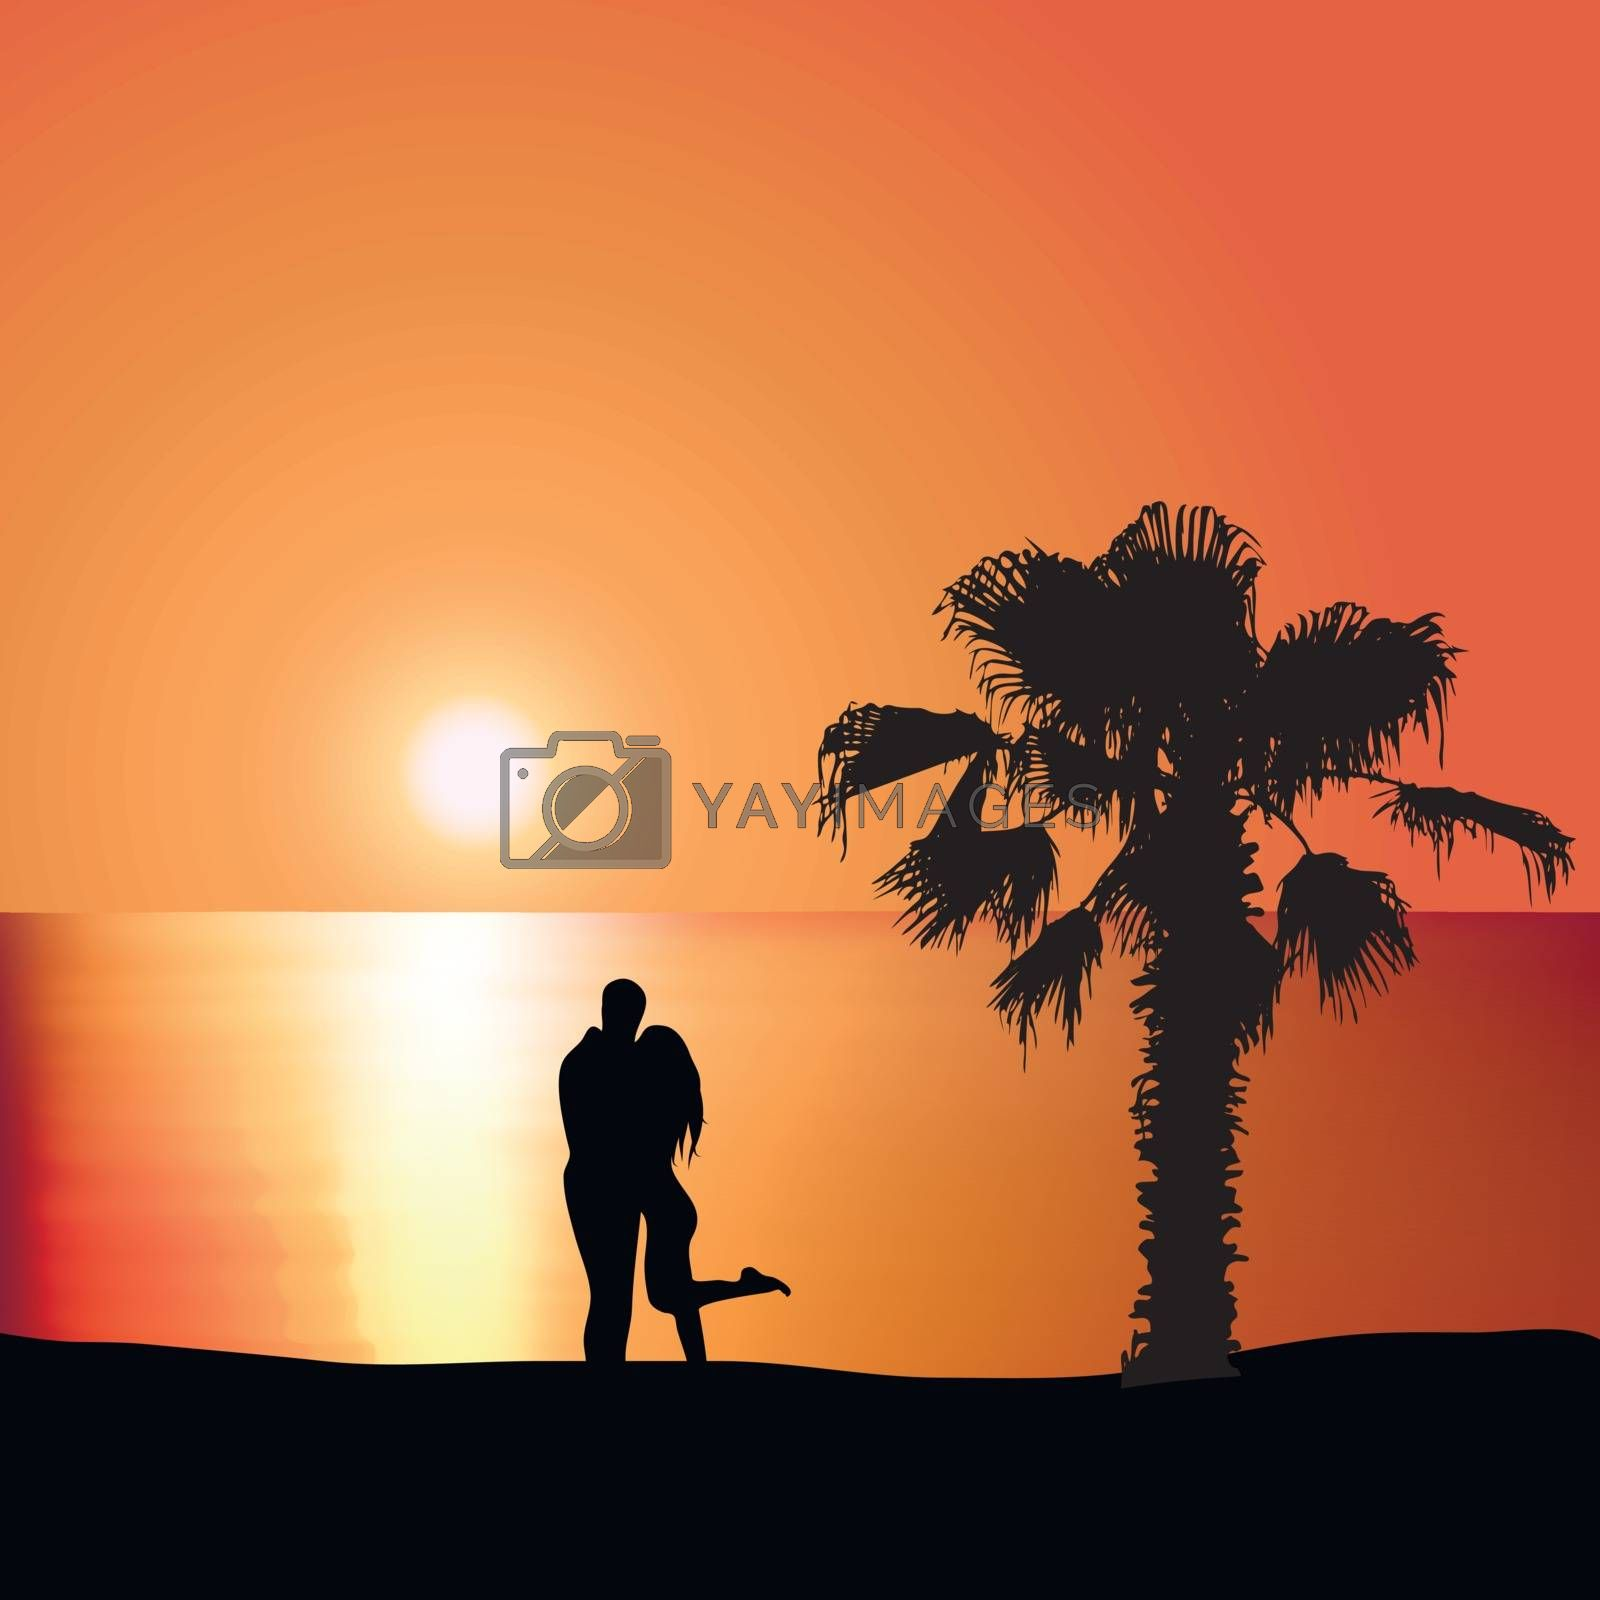 Man embraces woman on the seashore at sunset